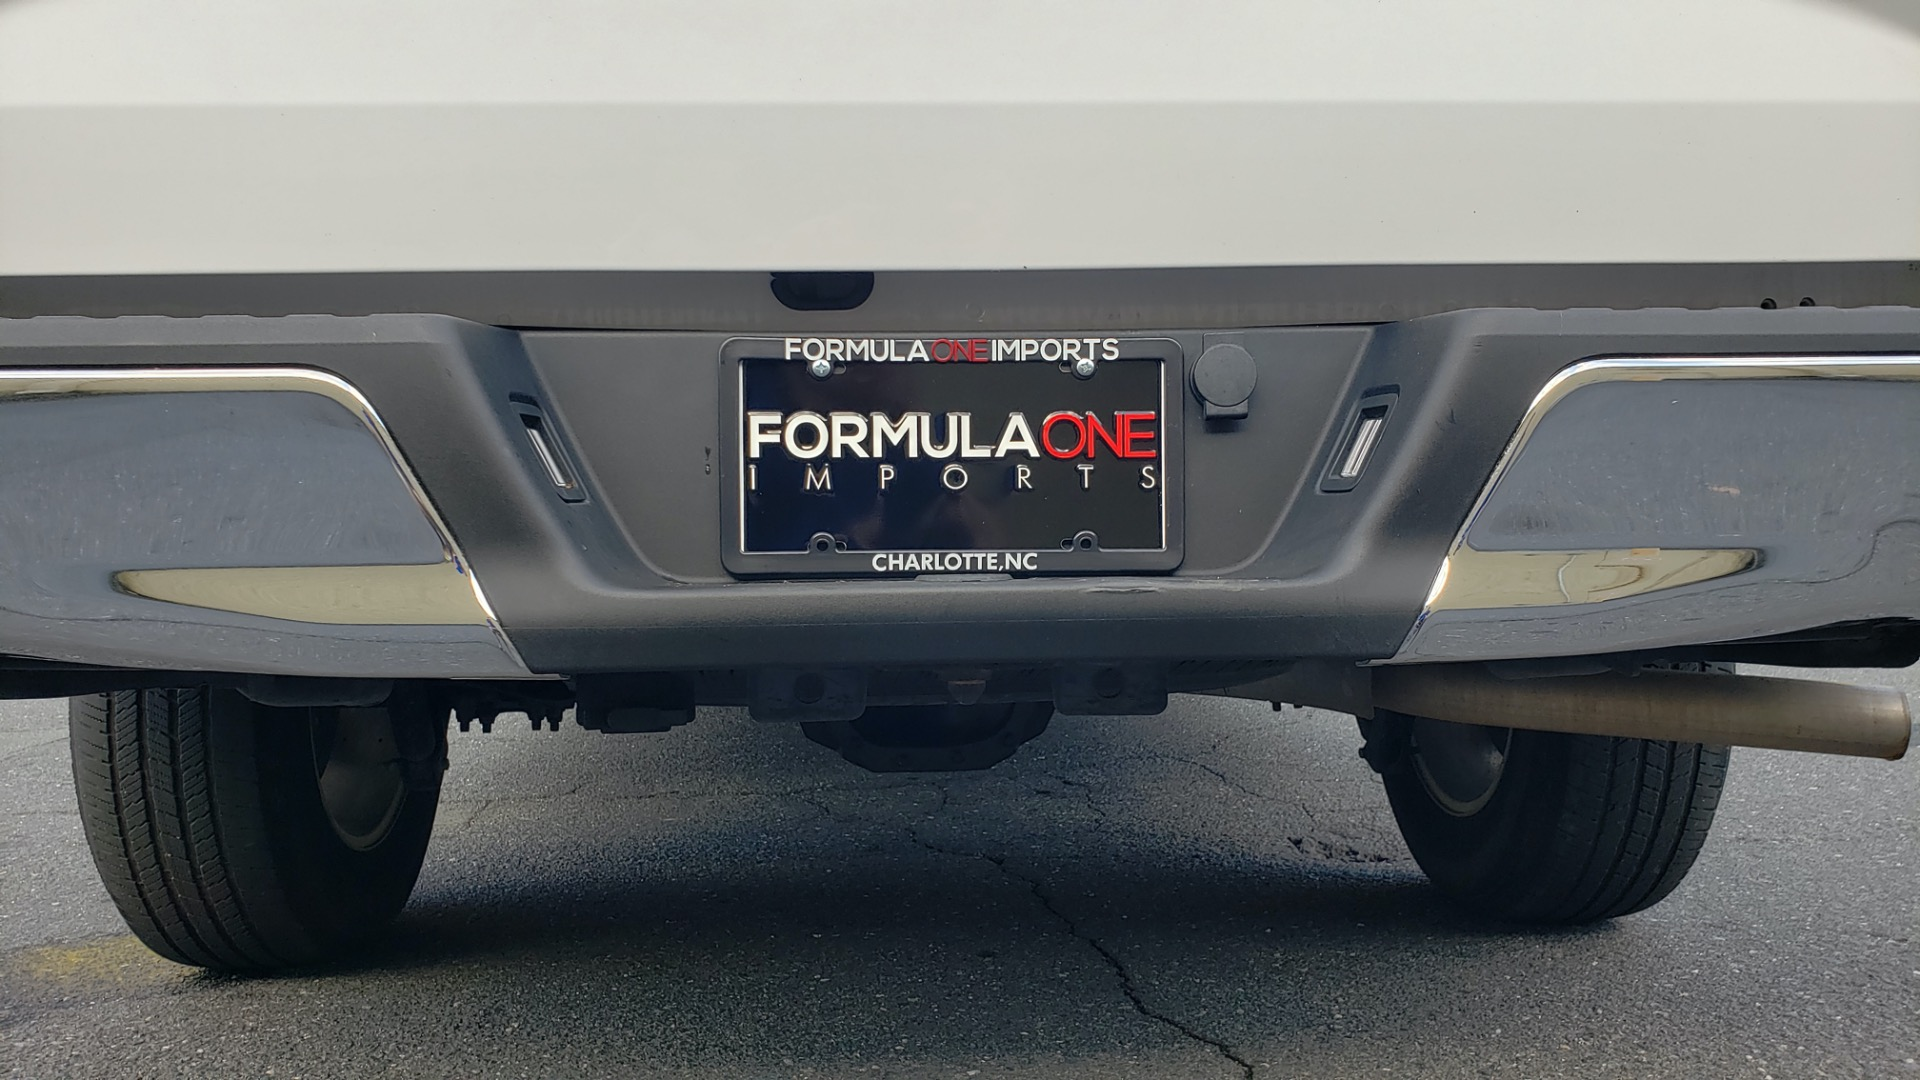 Used 2017 Ford F-150 XLT 4x2 SUPERCREW / V6 / AUTO / 145 WB / 5.6 BED for sale Sold at Formula Imports in Charlotte NC 28227 34